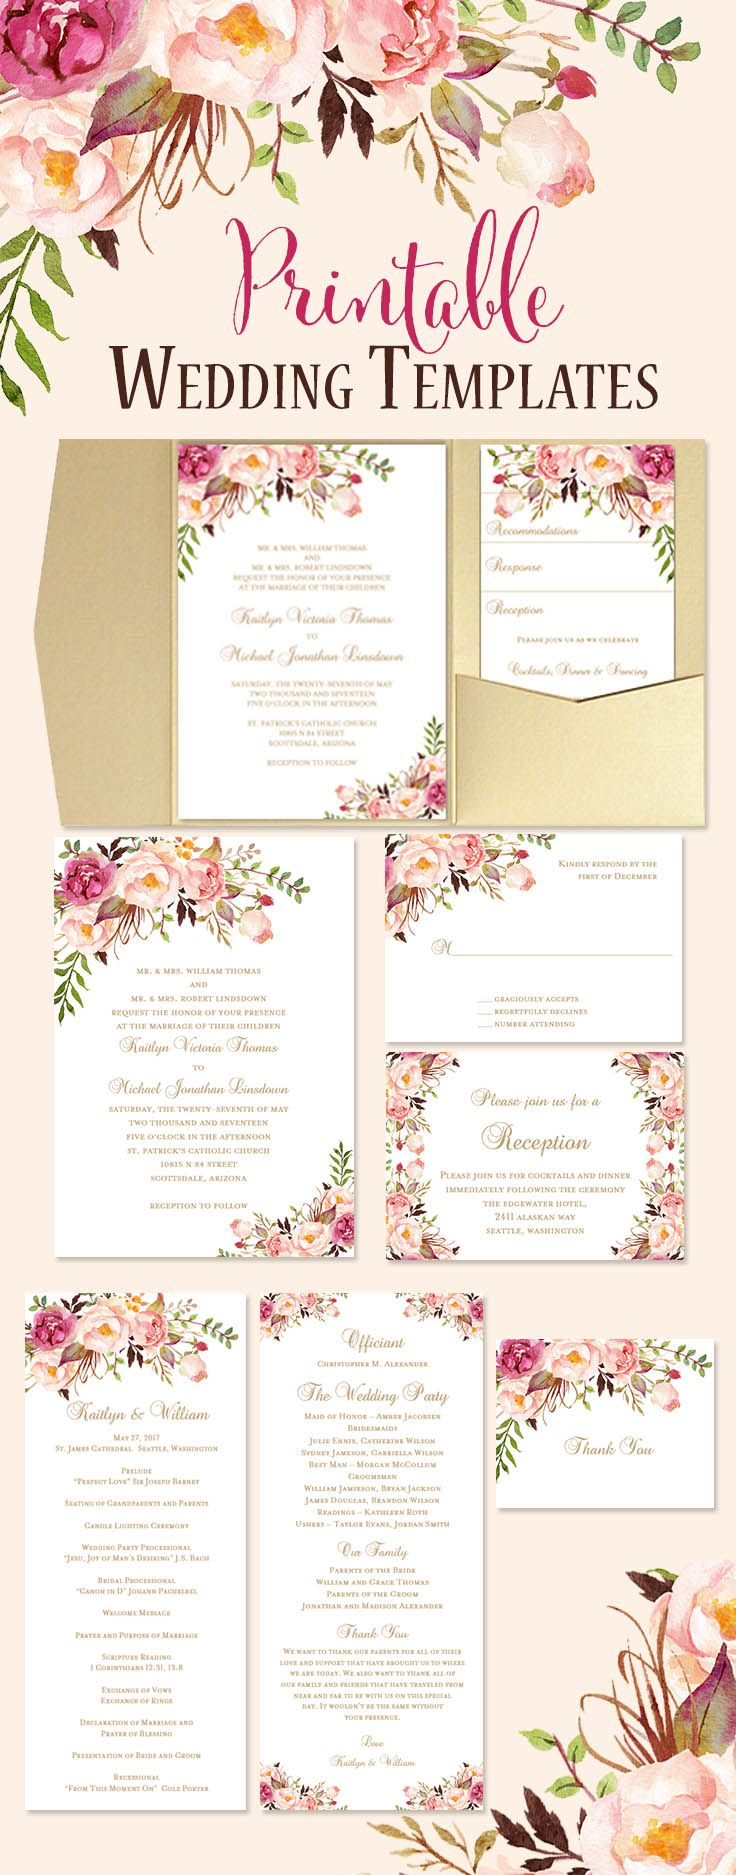 Stunning watercolor floral wedding stationery you can print. 17 DIY templates from invitations through to reception seating chart posters. All templates are instant downloads and you can start making your own wedding invites today.